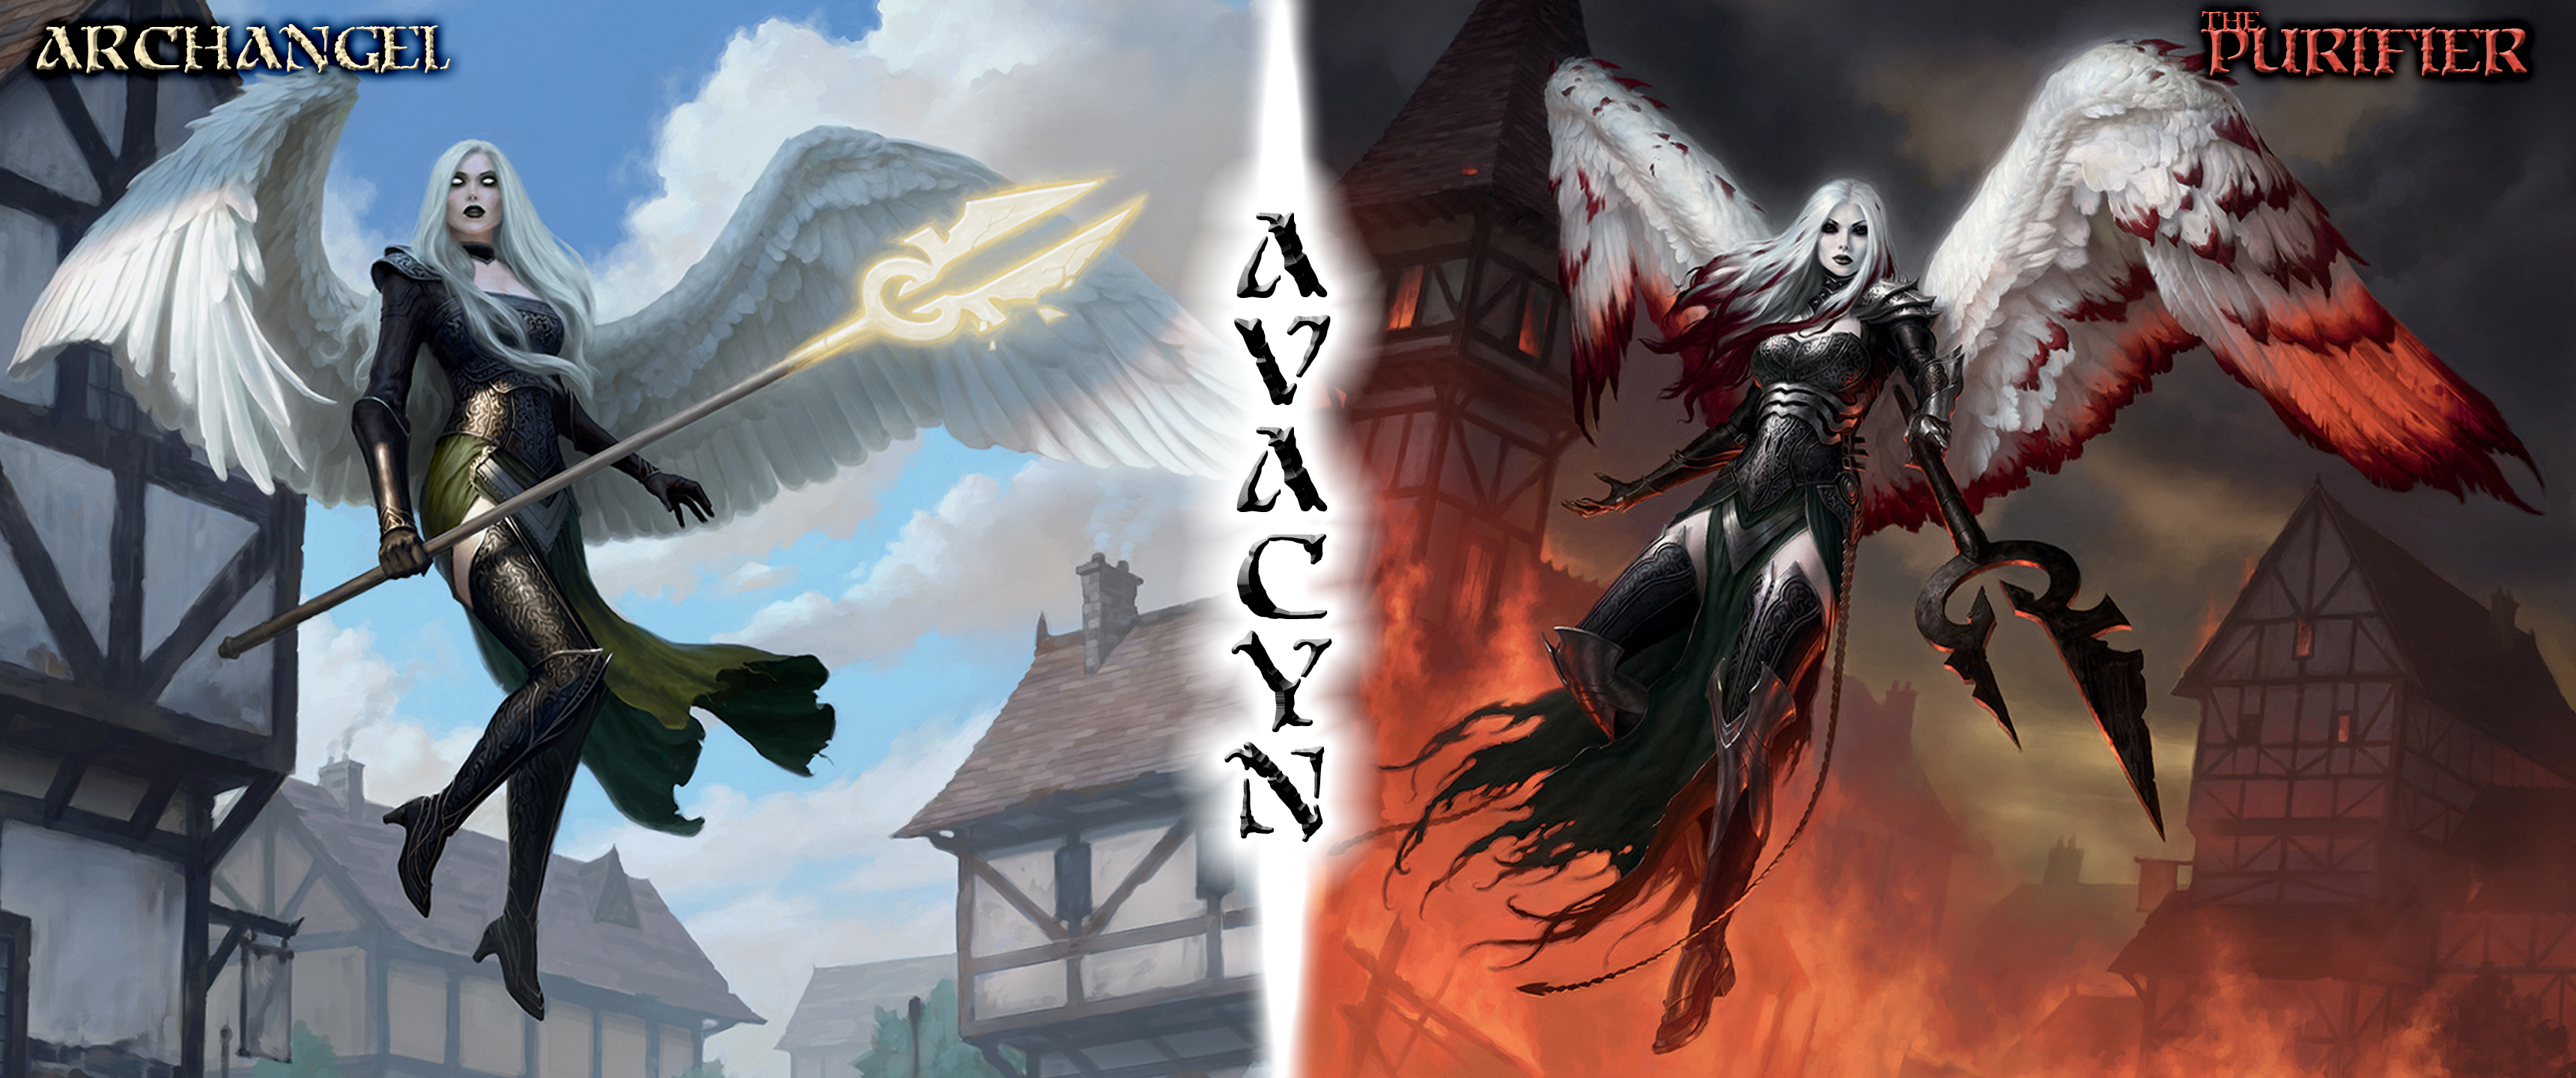 Image result for archangel avacyn art